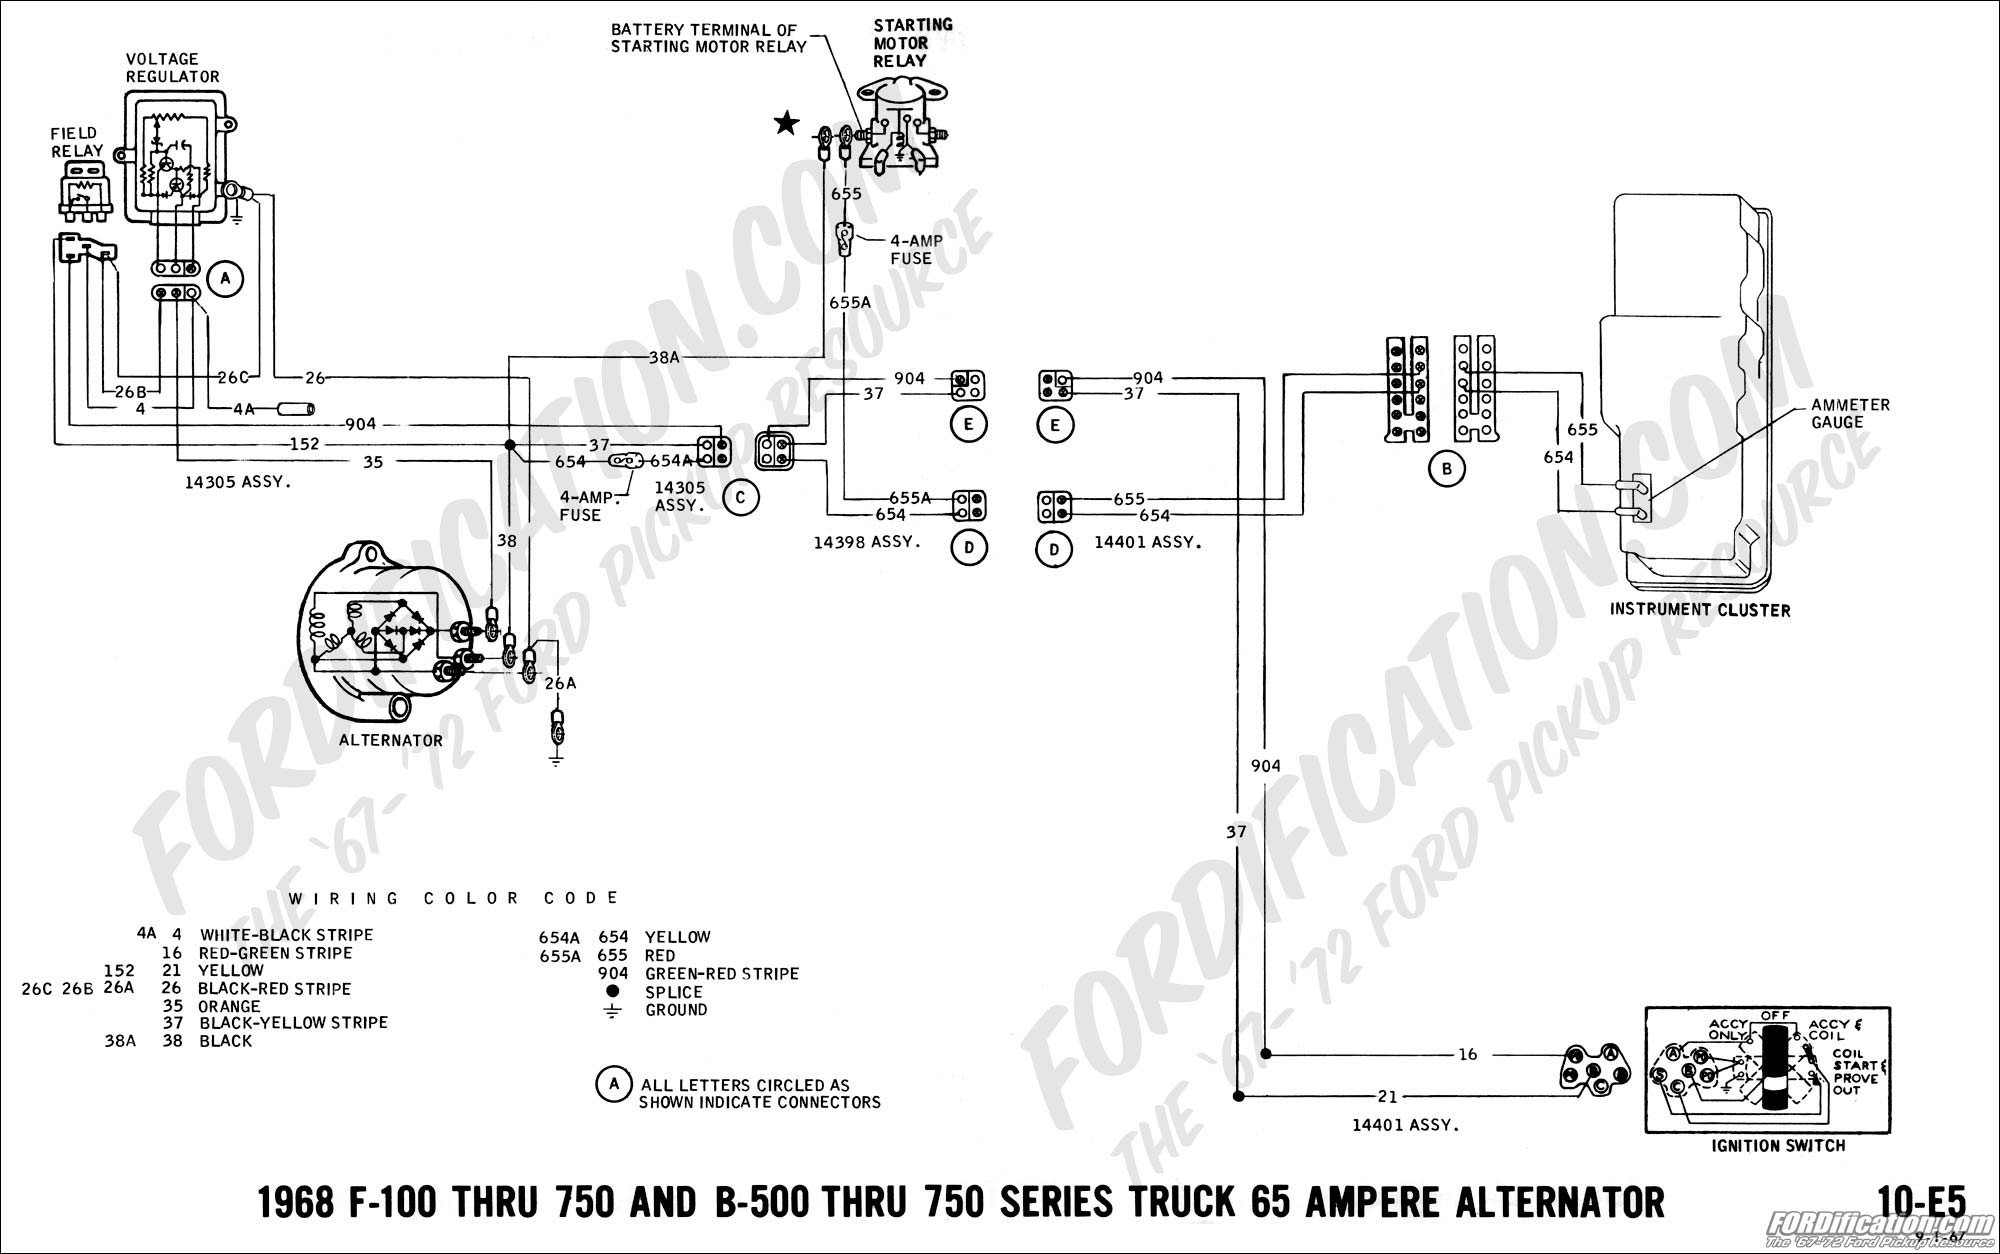 Charging System Wiring Diagram Caprice Alternator Wiring Diagram ...